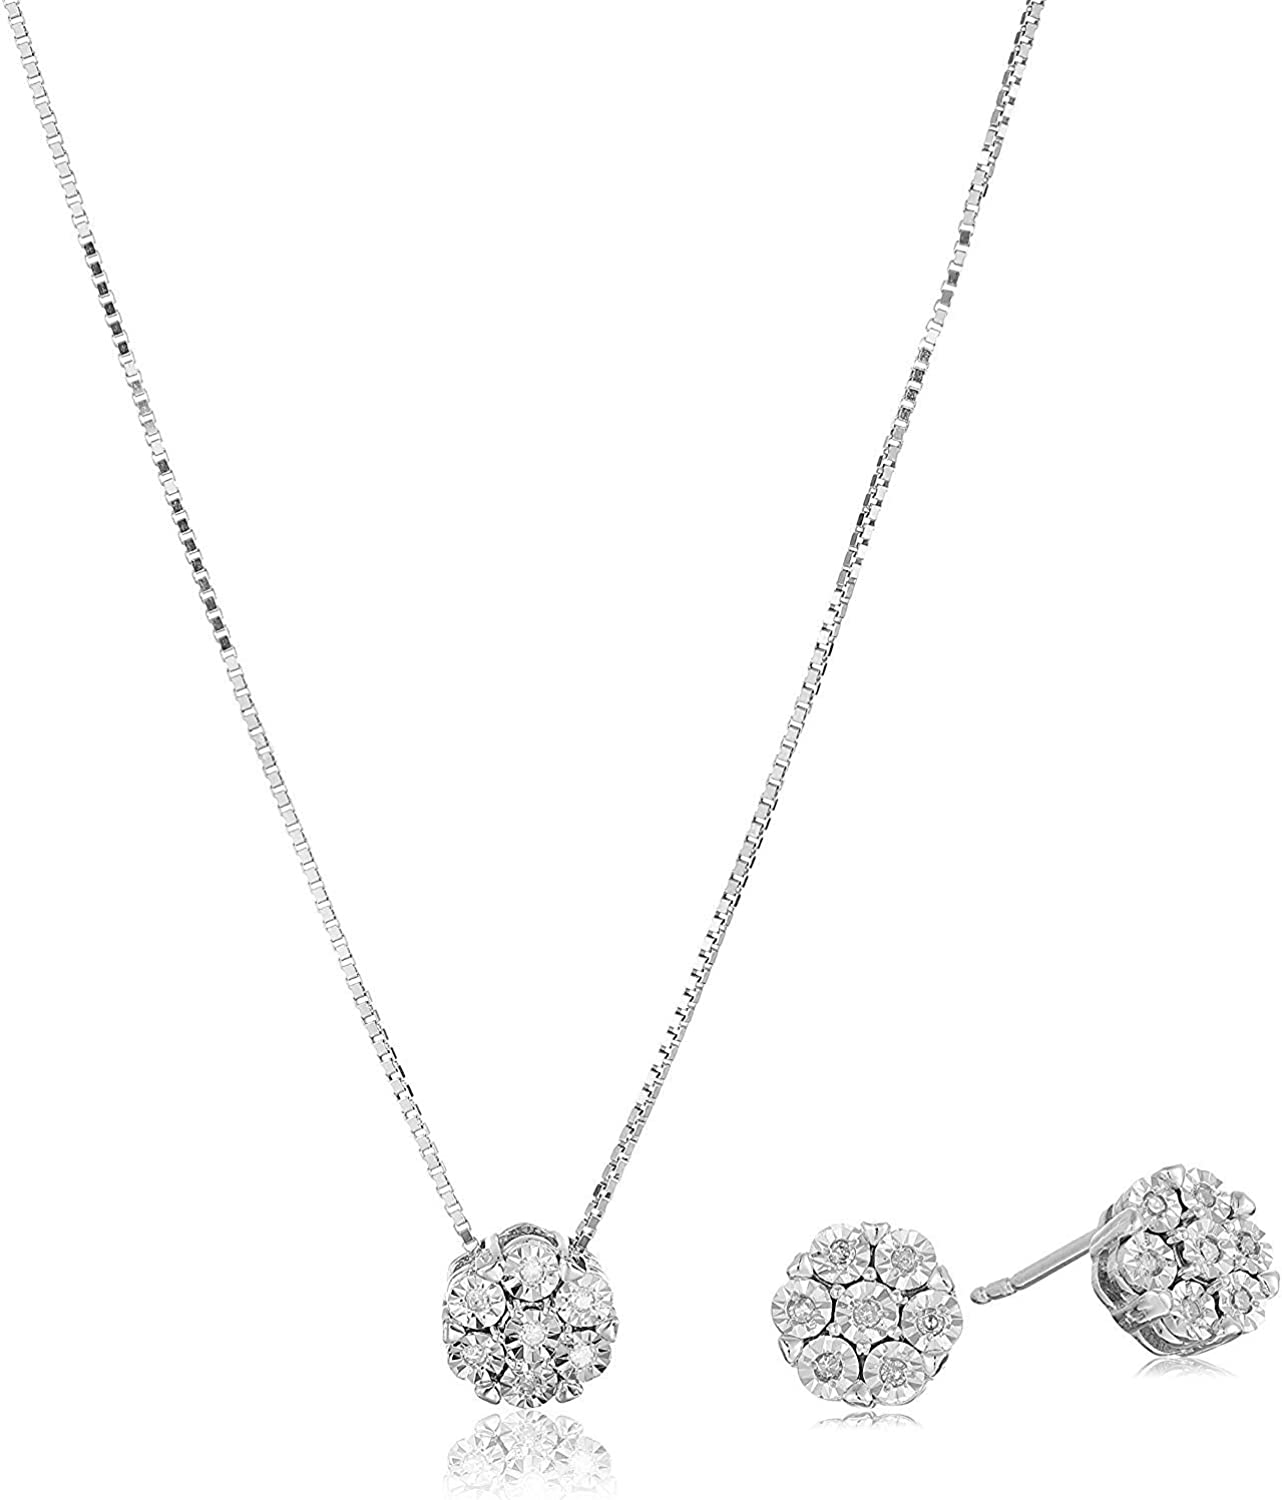 ".925 Sterling Silver 1/10 Cttw Diamond Miracle-Plate 18"" Pendant Necklace and Stud Earrings Jewelry Set - Choice of Metal Colors"